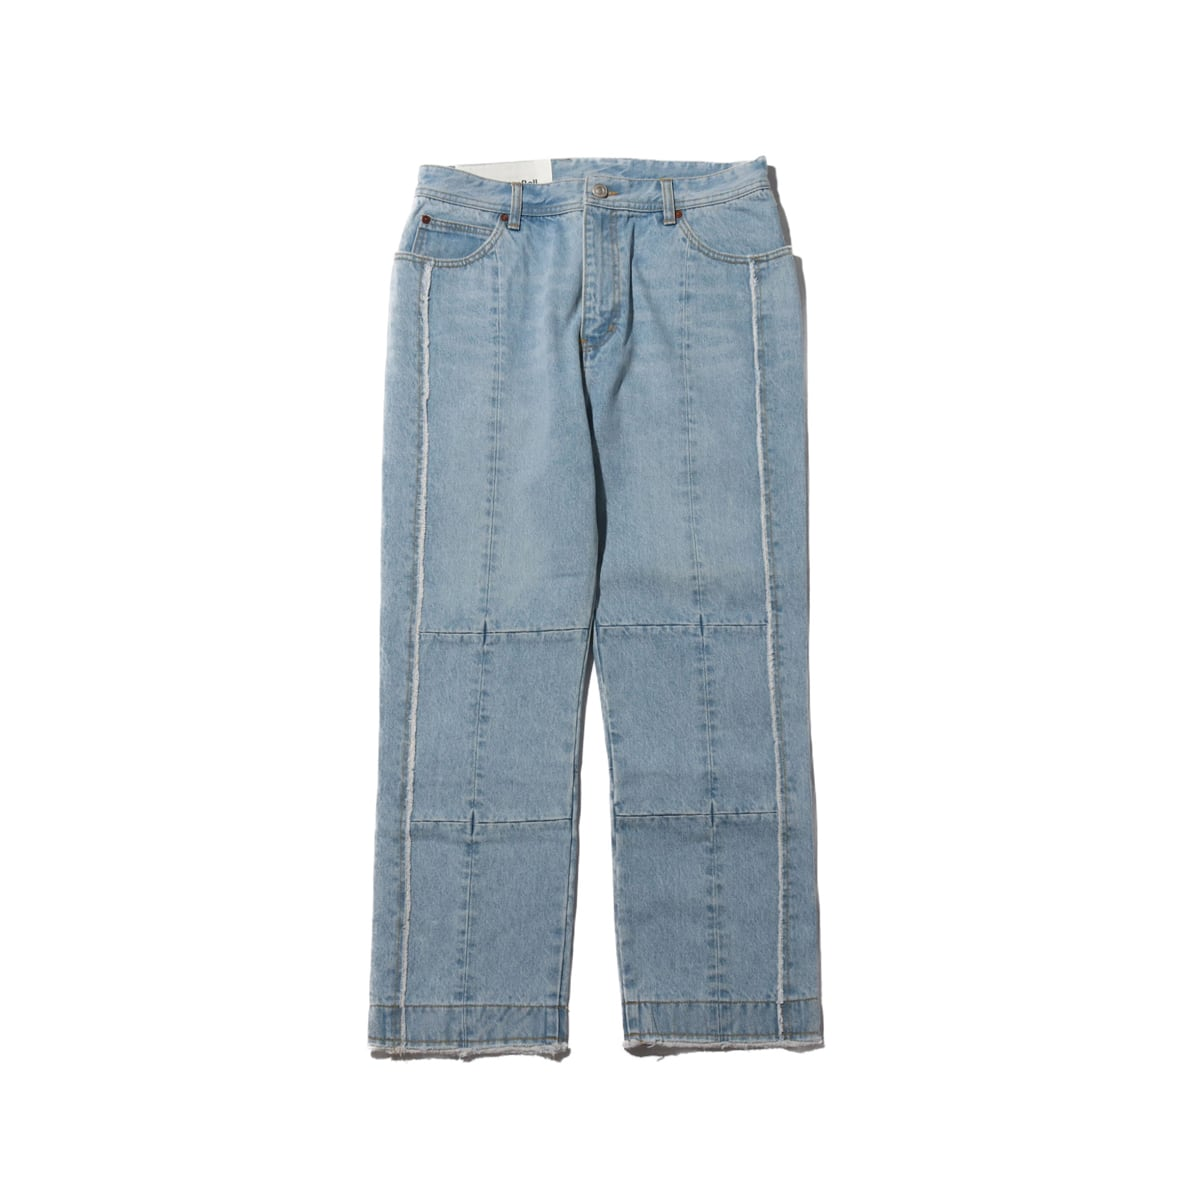 Andersson Bell DENIS CROPPED JEANS BLUE 19FA-I_photo_large